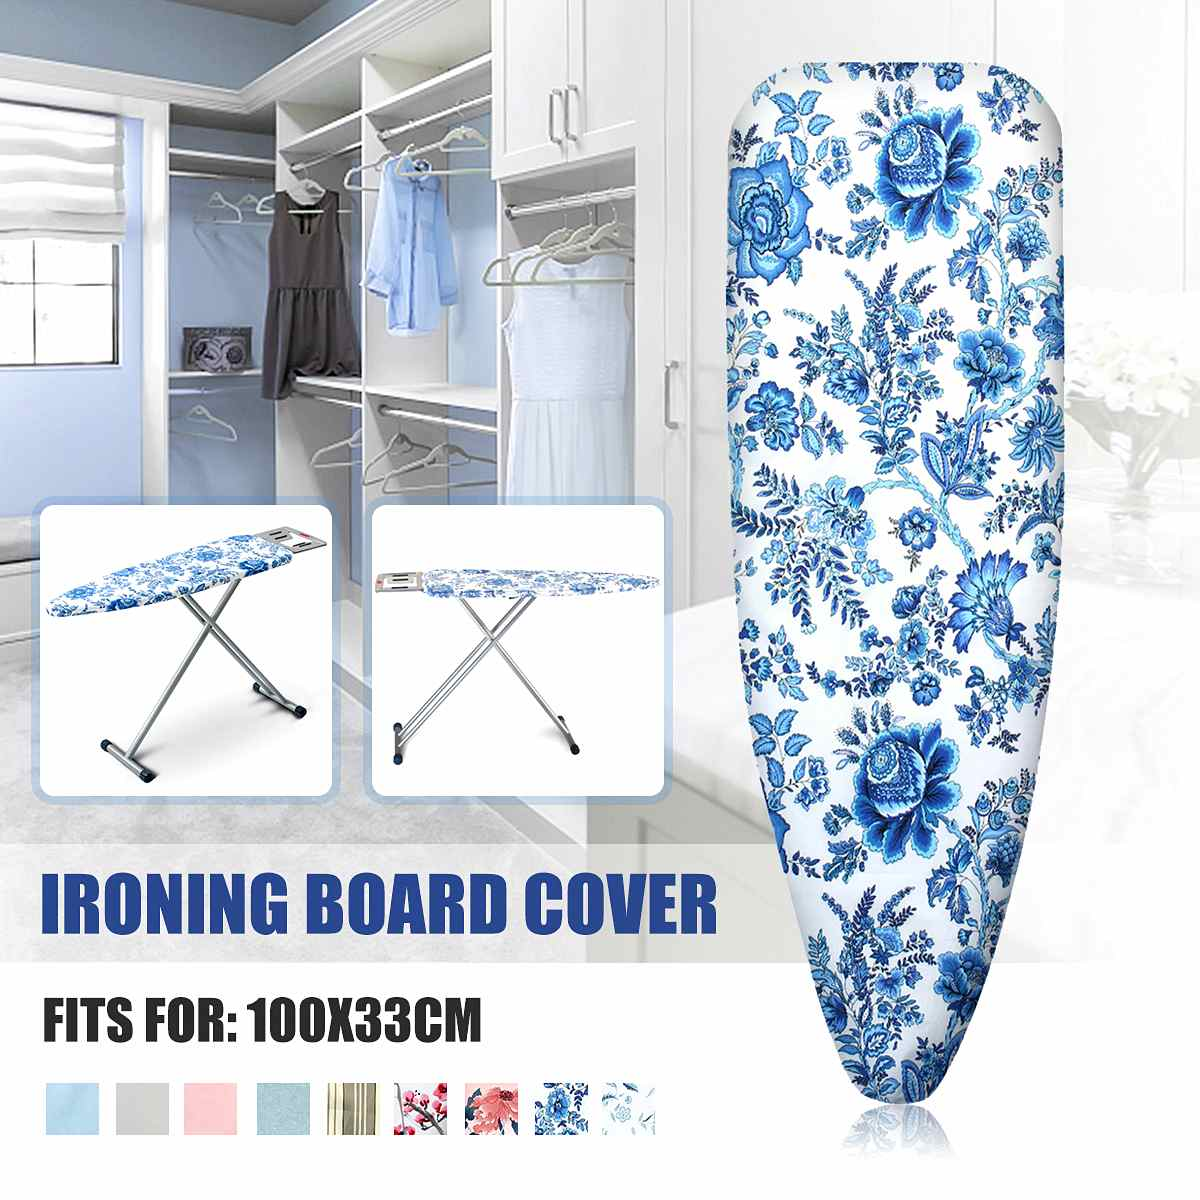 1pcs Portable Cotton Printed Ironing Board Cover Folding Elasticated Household Ironing Board Cover Mat Heat Non-Slip Ironing Pad